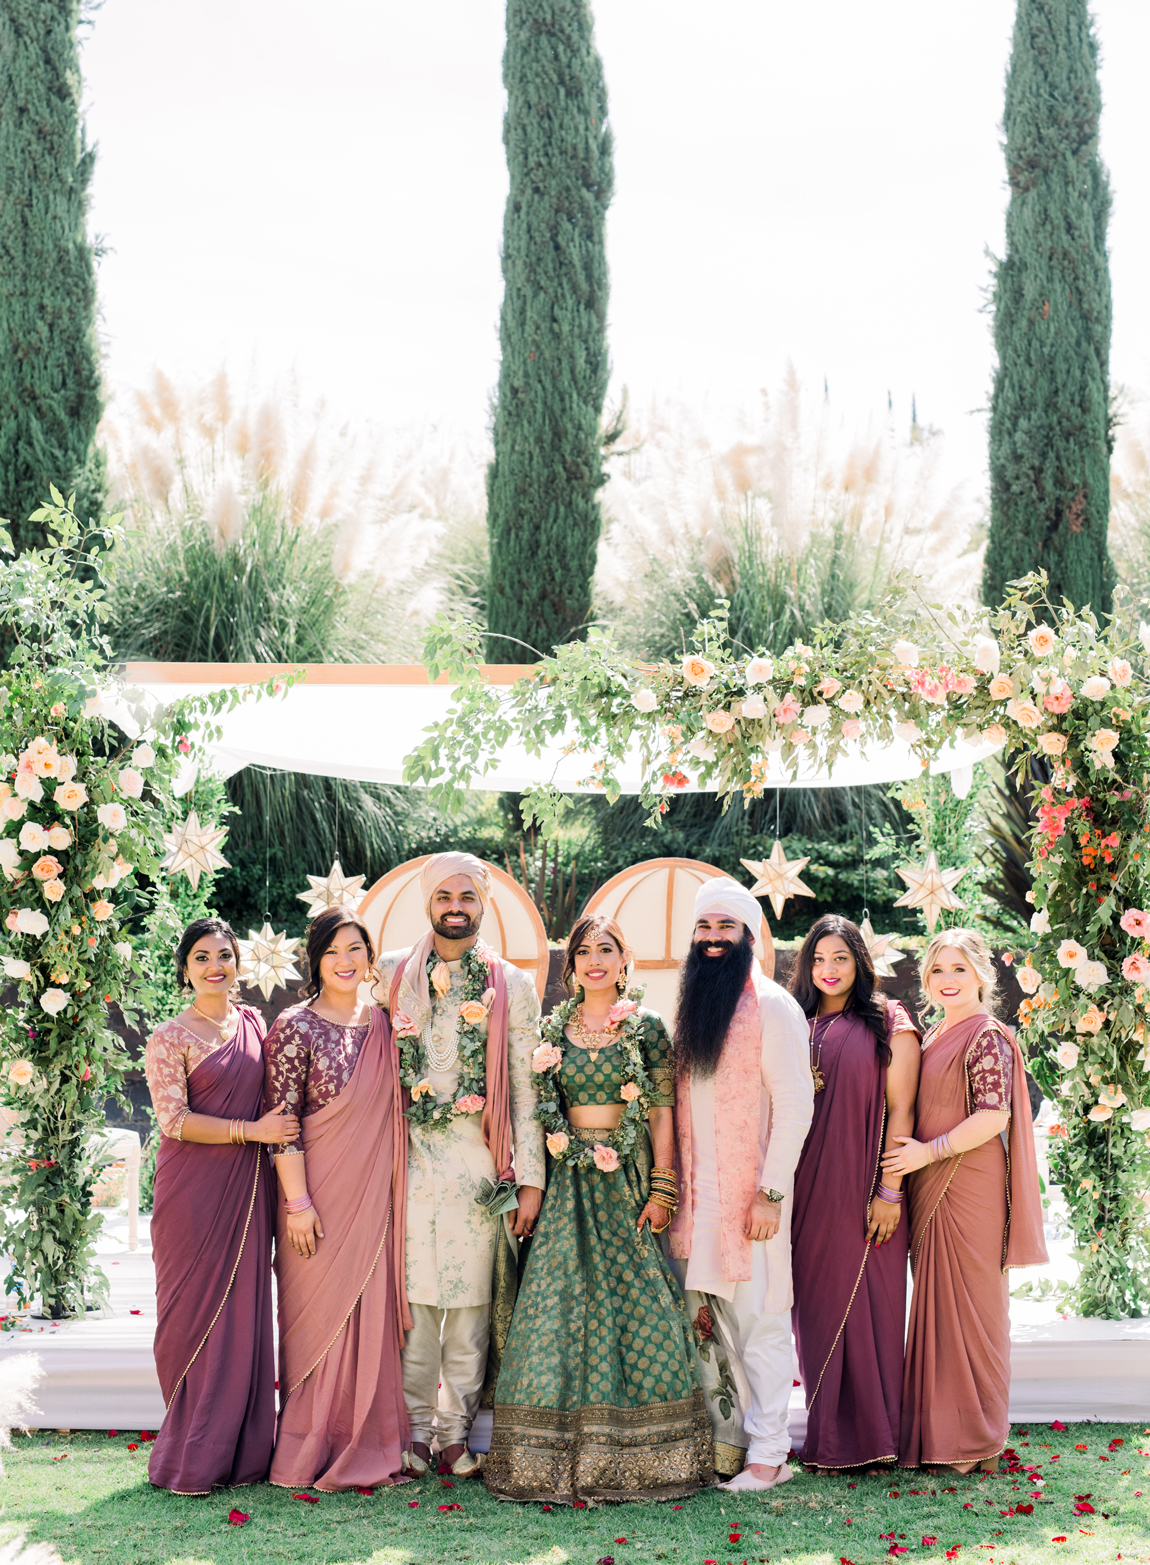 wedding bridal party in coordinating blush and purple attire